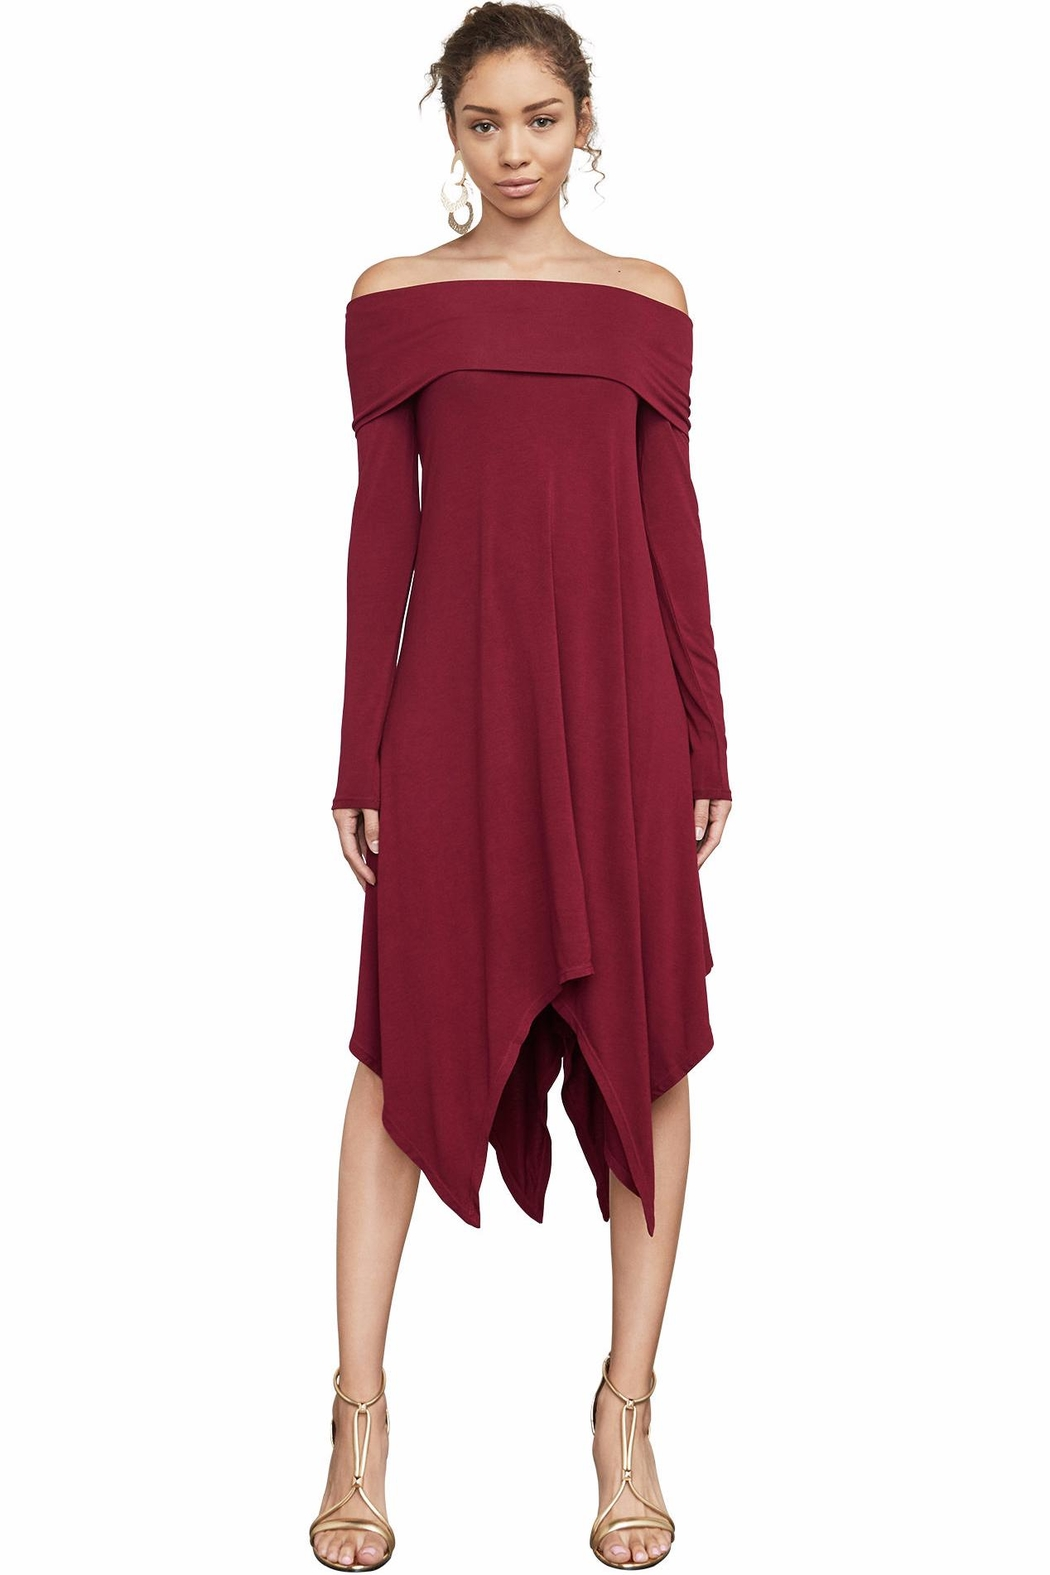 BCBG Max Azria Off-The-Shoulder Knit A-Line - Main Image